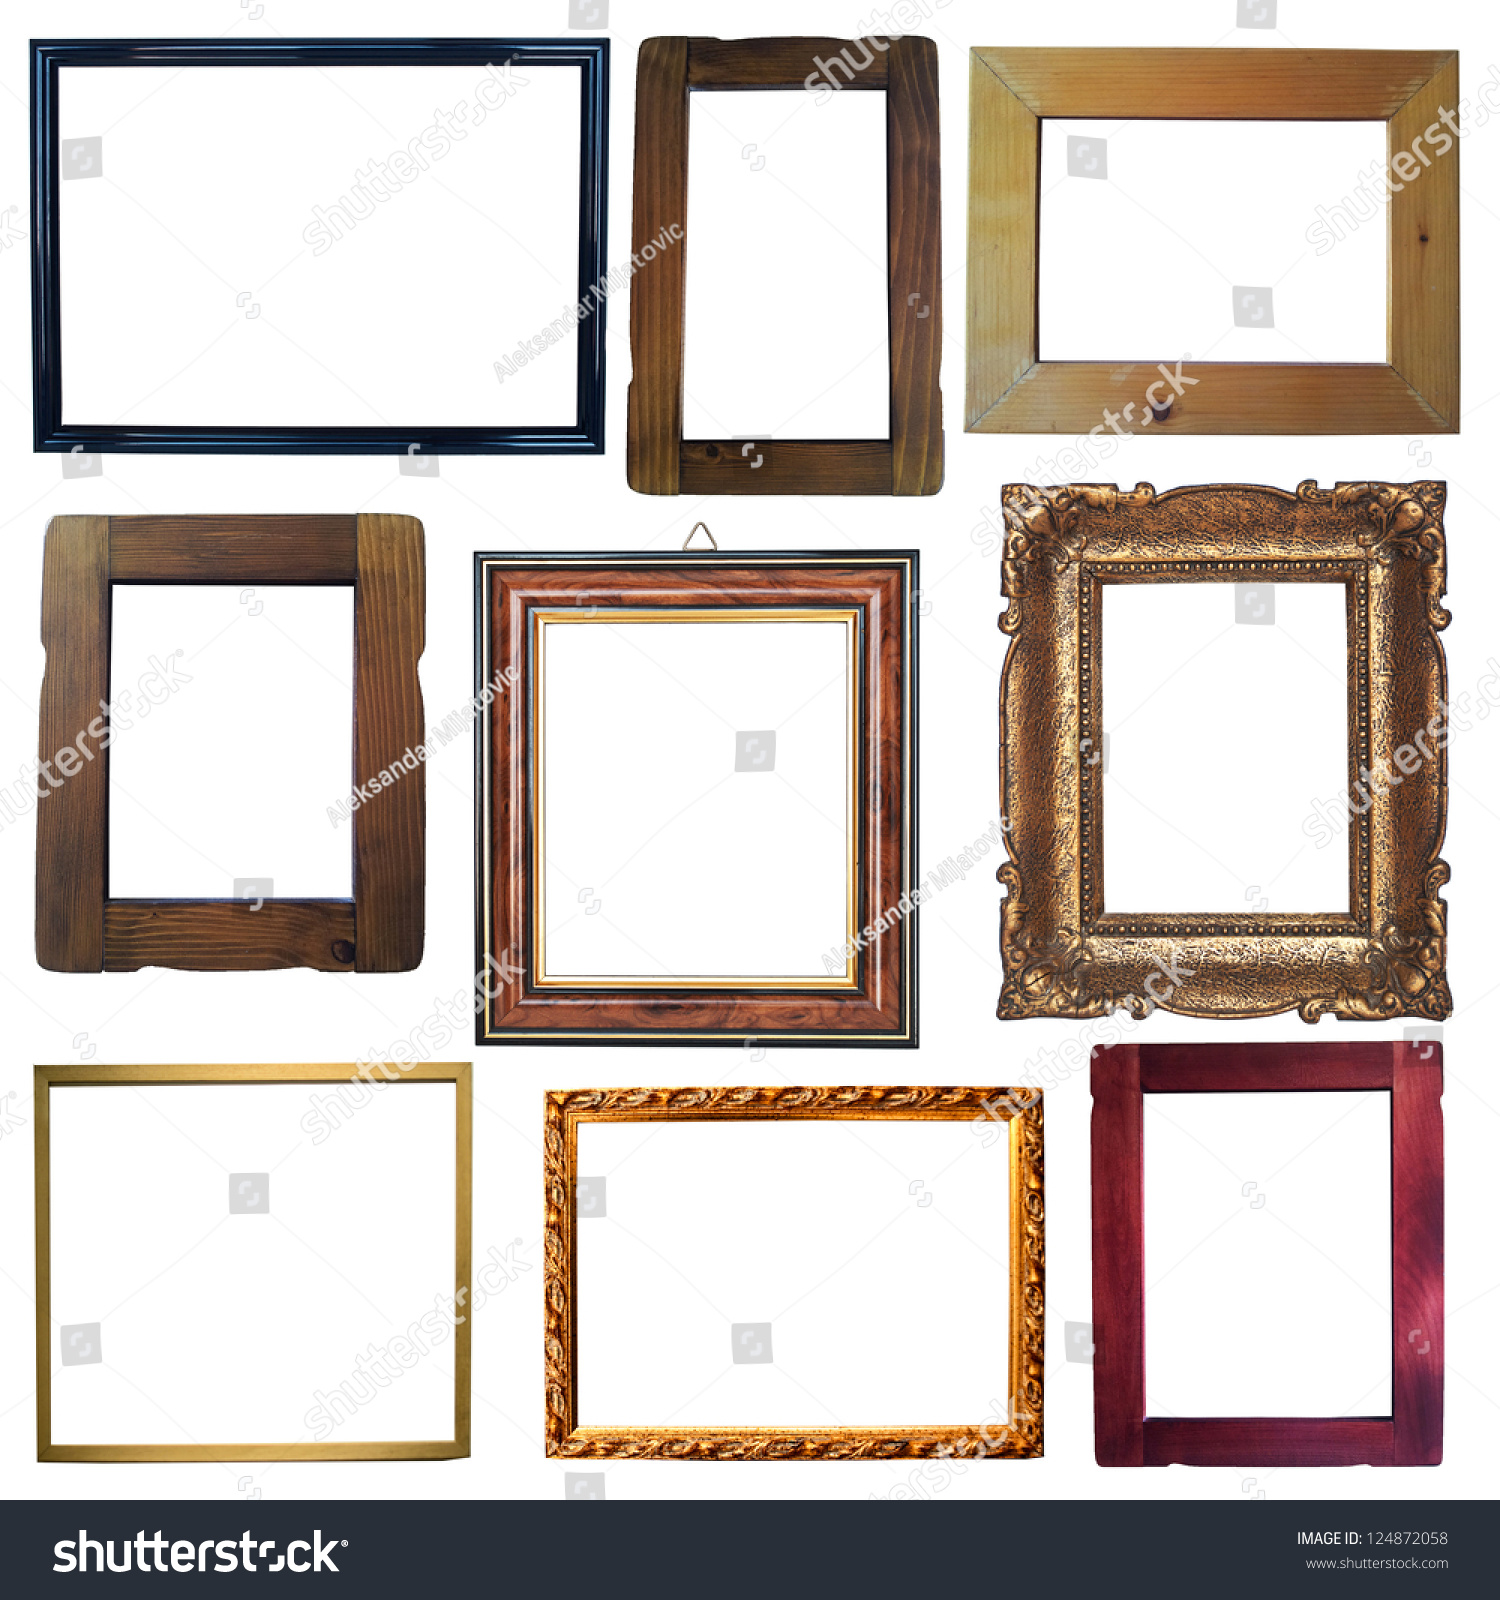 collection of vintage wooden and golden empty frames isolated on white background